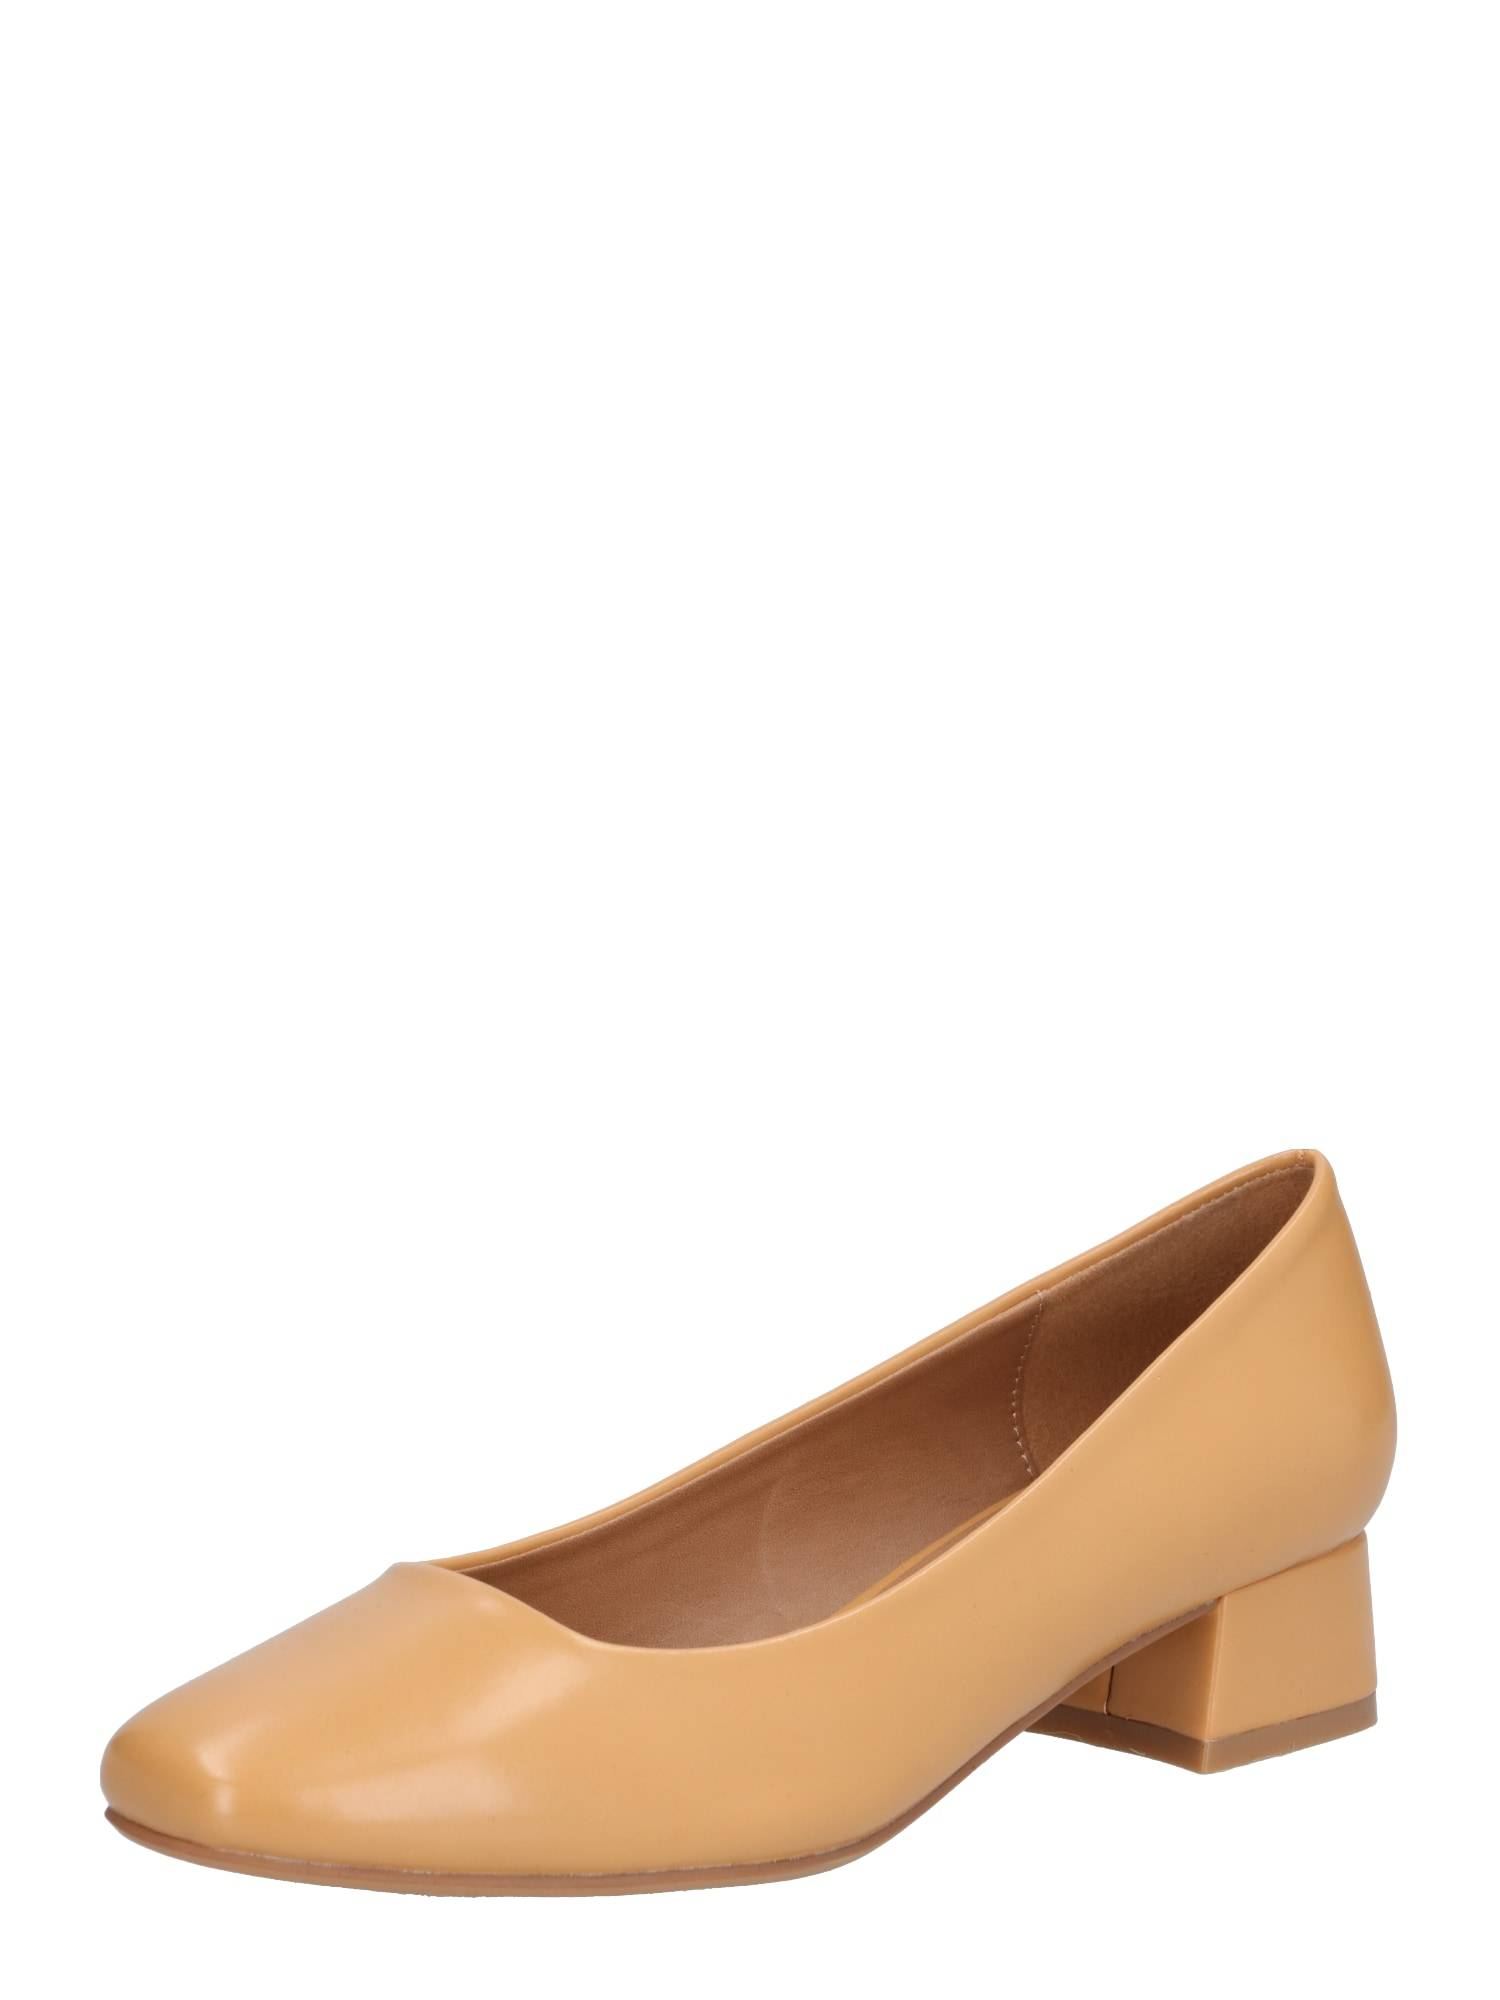 ABOUT YOU Escarpins 'Fiona'  - Beige - Taille: 39 - female